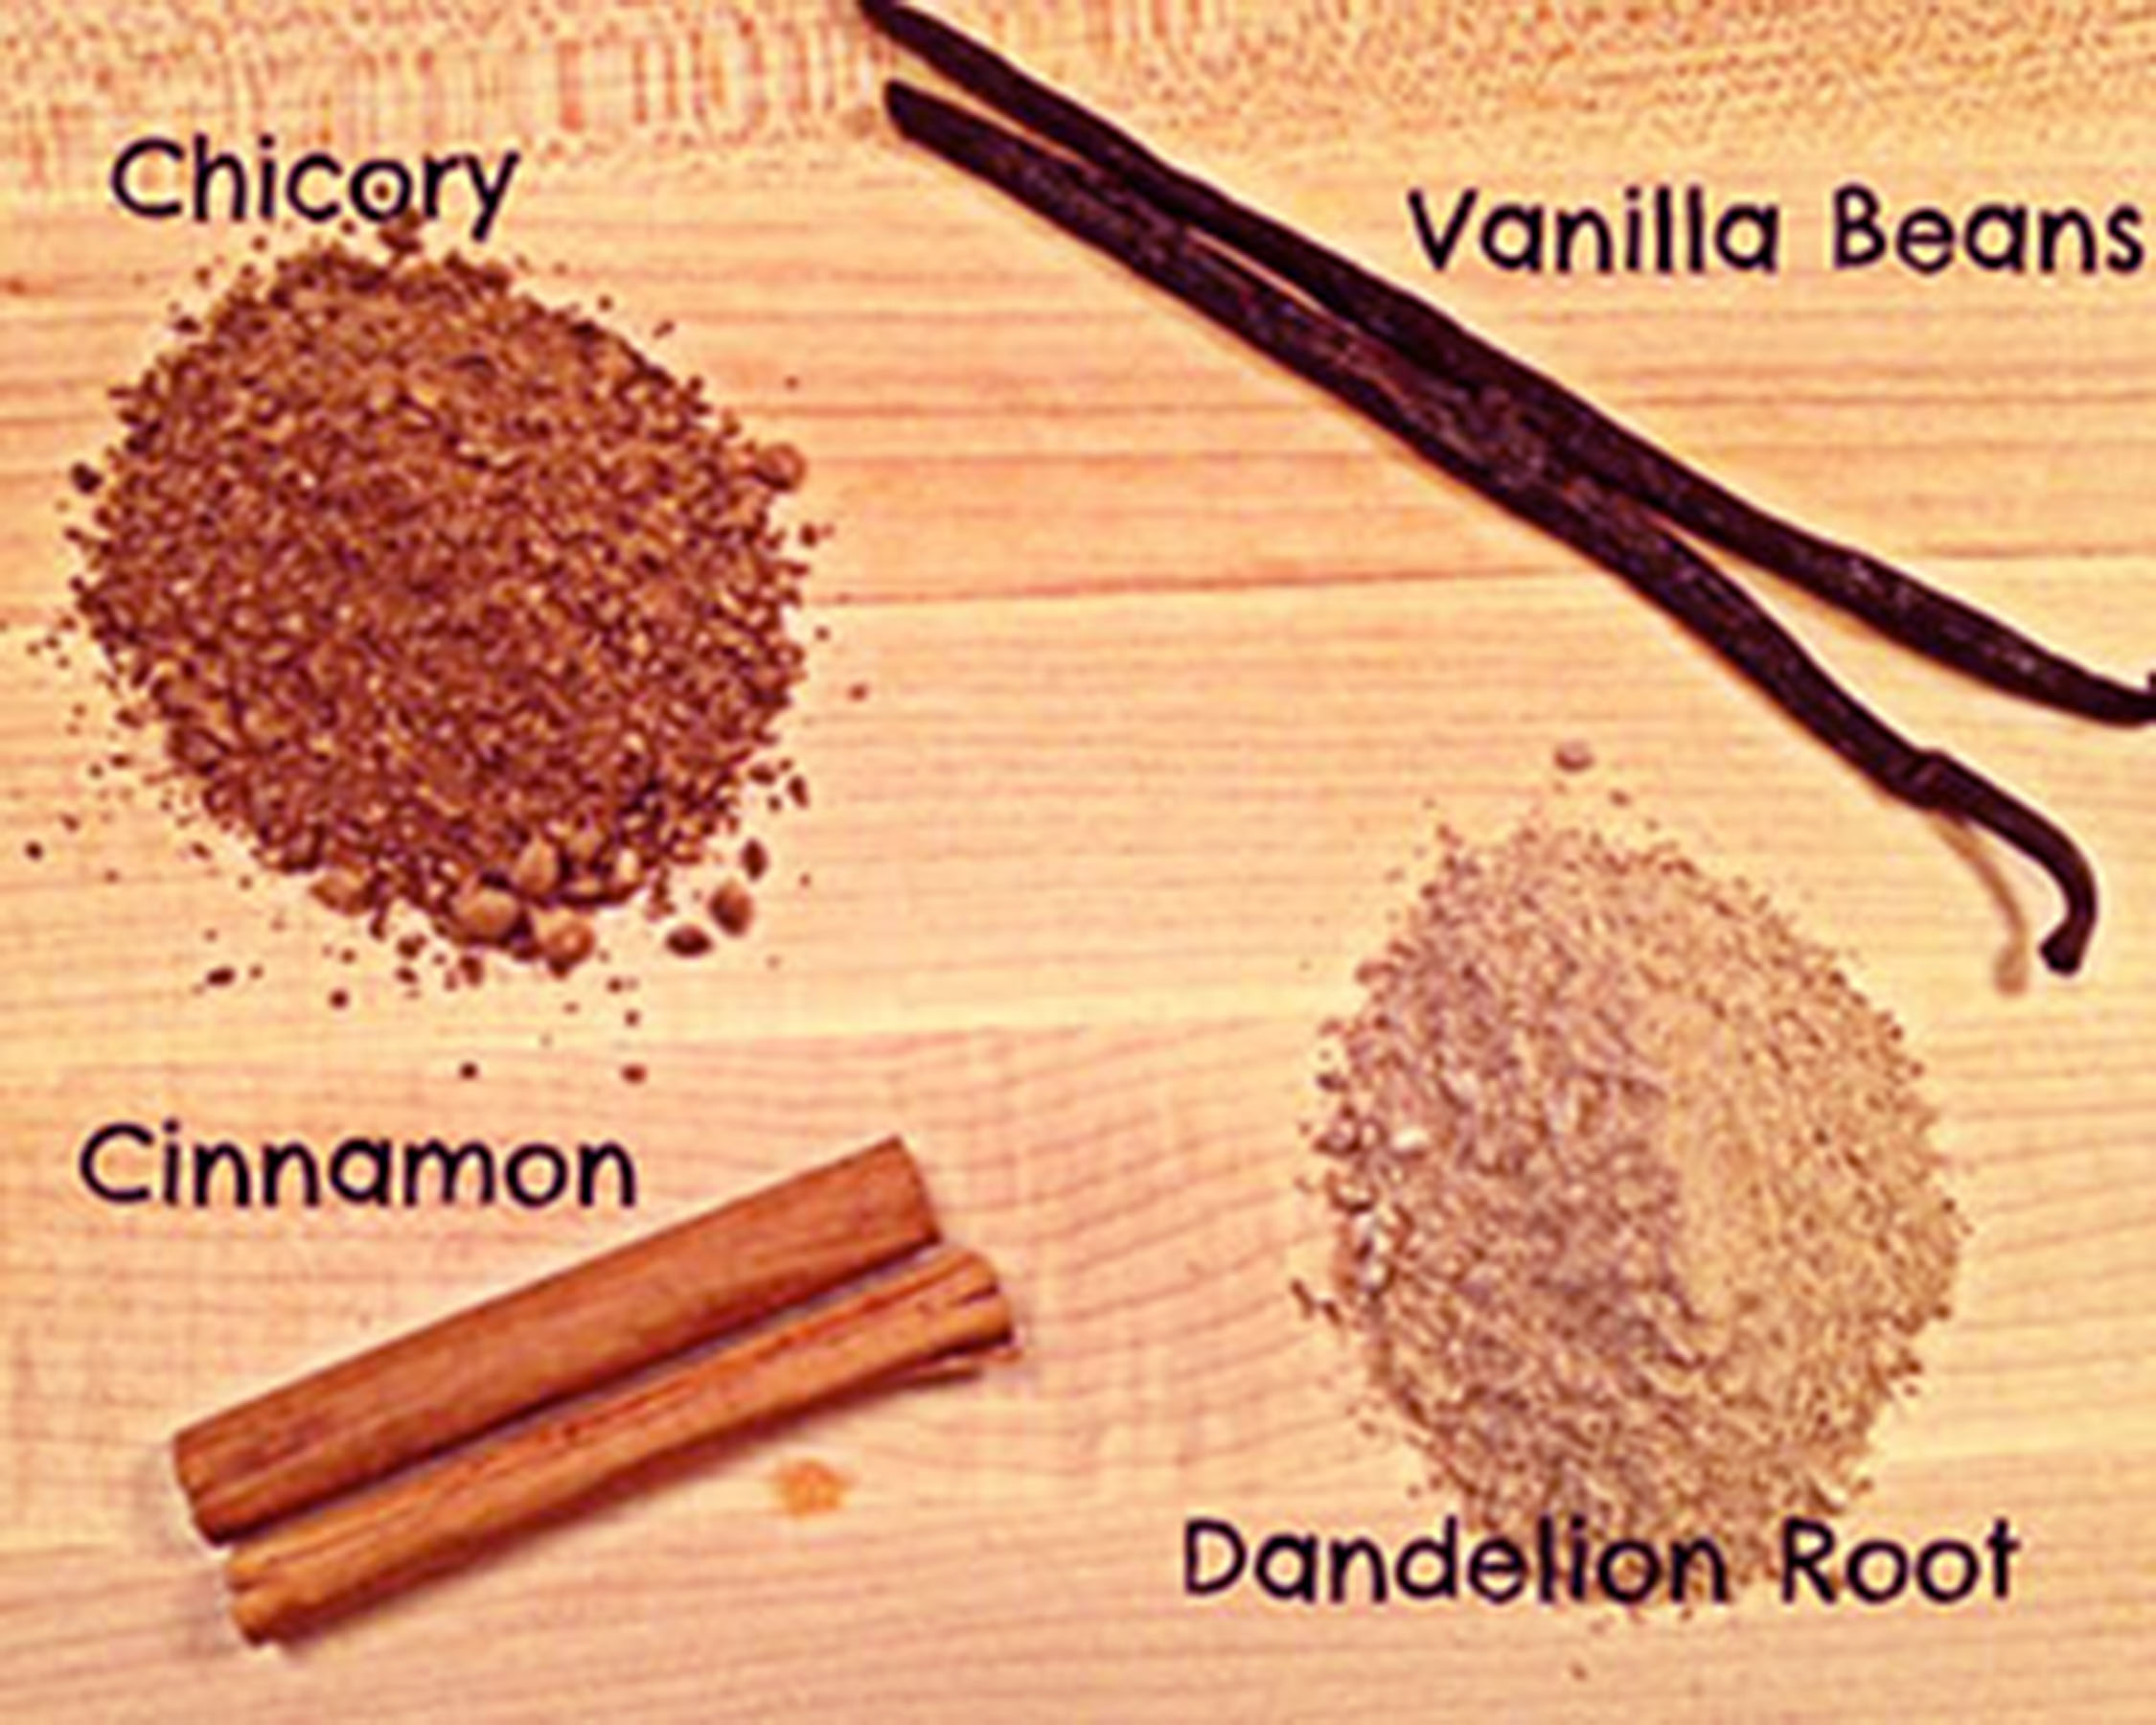 Dandelion Root Coffee